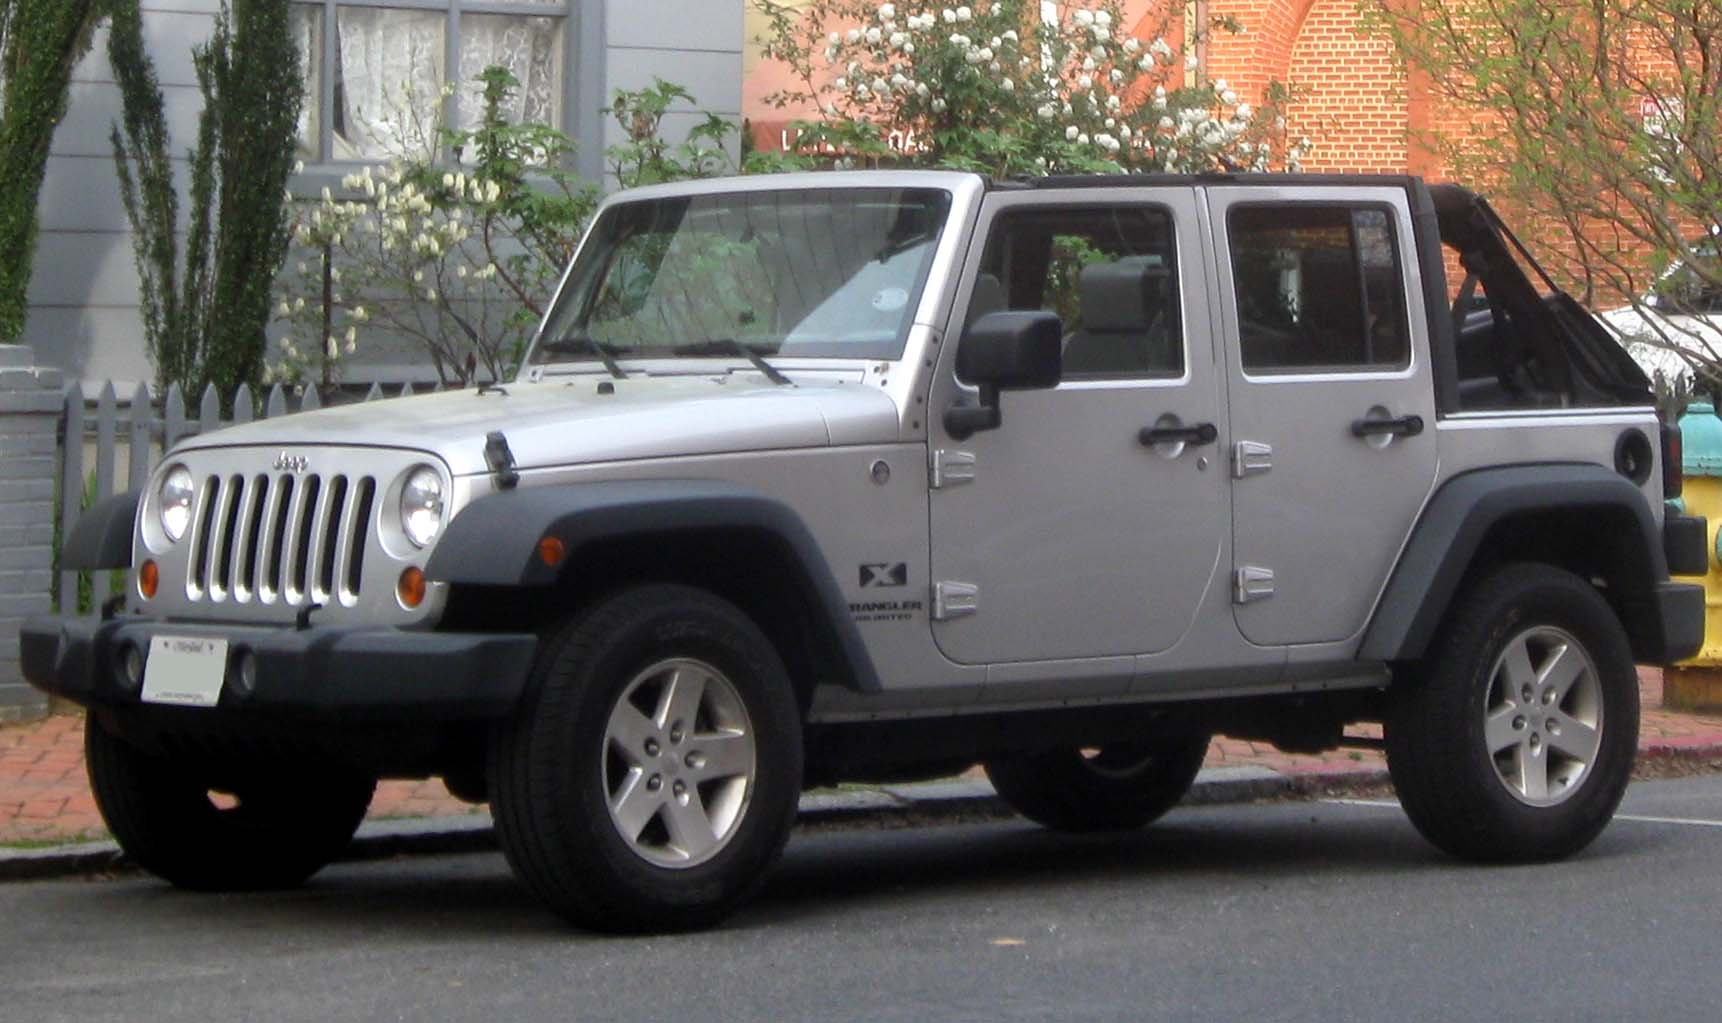 file jeep wrangler unlimited x 04 07 wikipedia. Black Bedroom Furniture Sets. Home Design Ideas